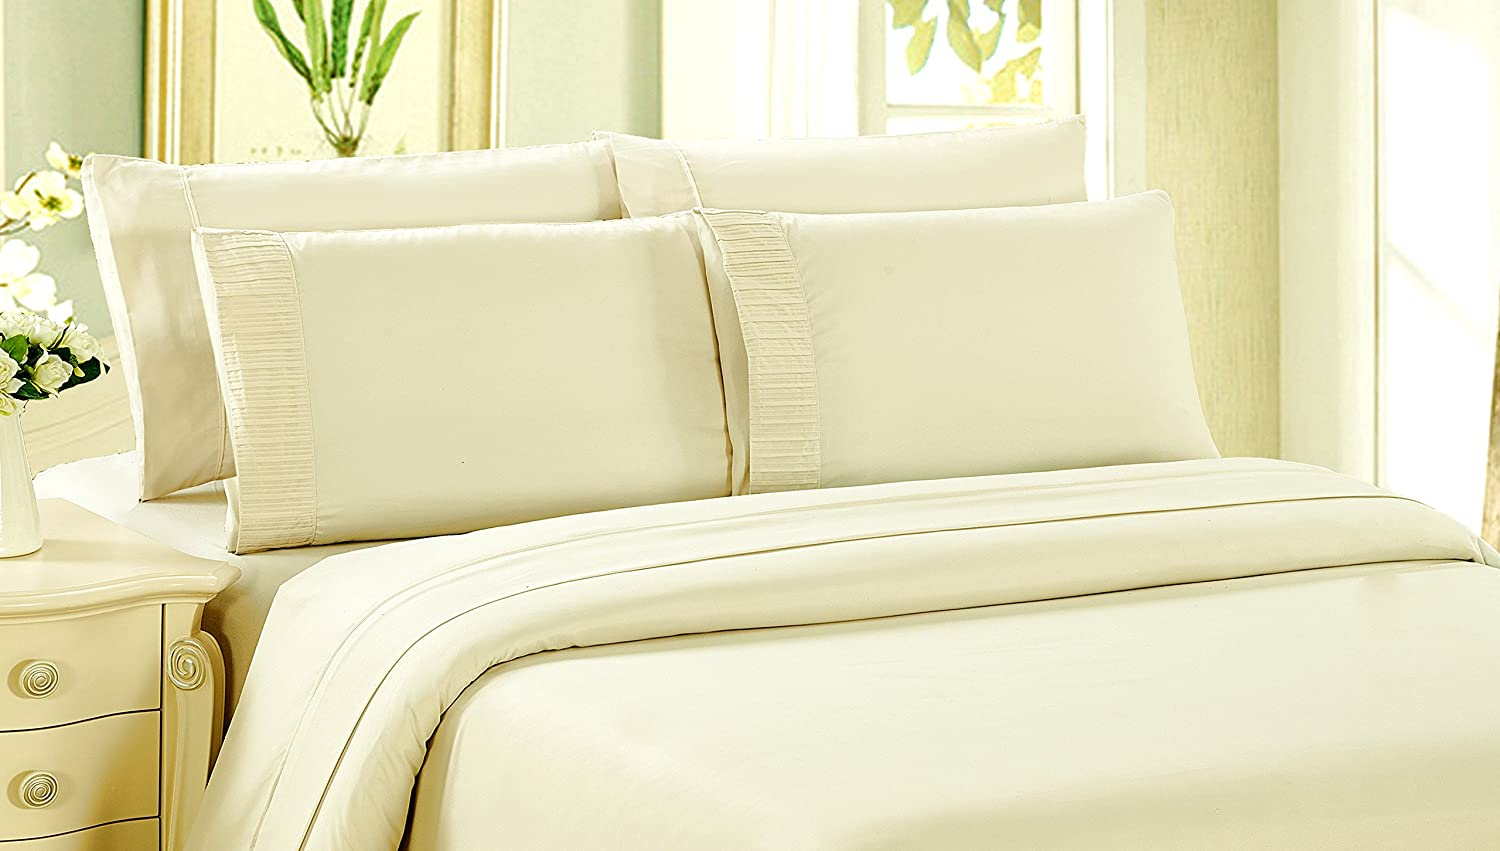 Bamboo Living Eco Friendly Egyptian Comfort Bedding 3 Piece Duvet Cover Set with 2 Pillow Shams, Ivory Color, Queen Size